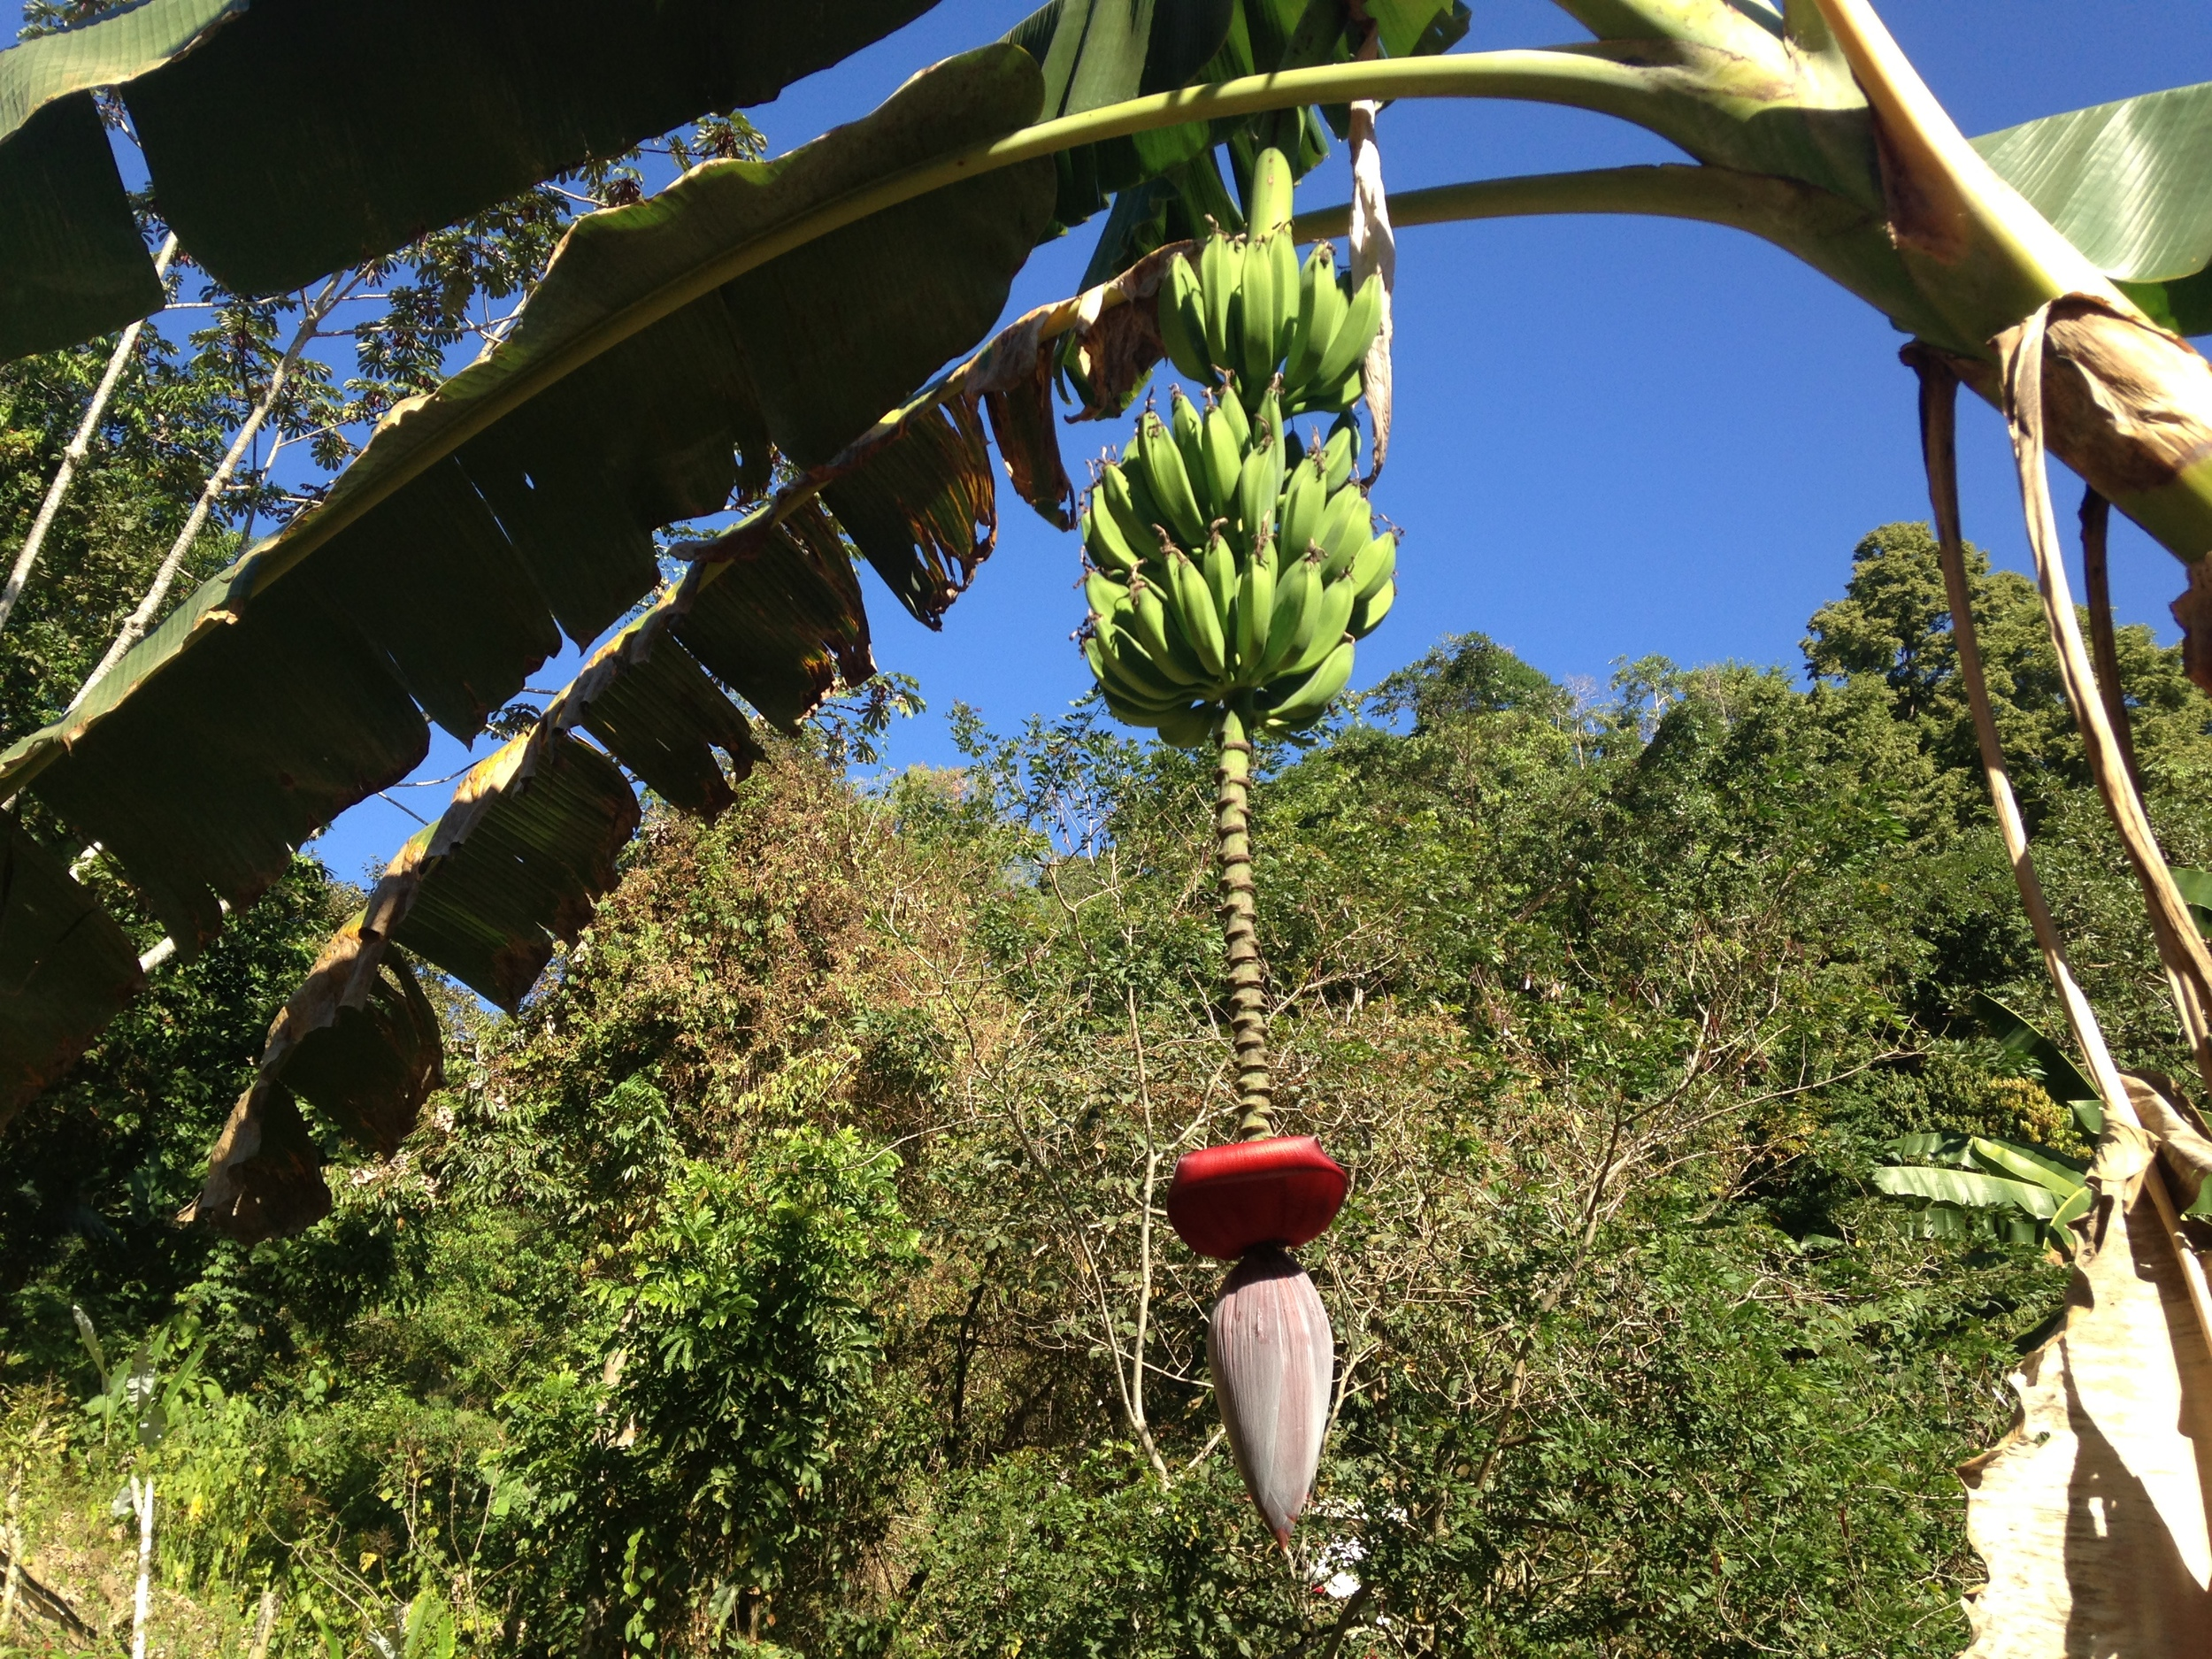 Jungle bananas and a blossom in  Santa Maria Tepexipana